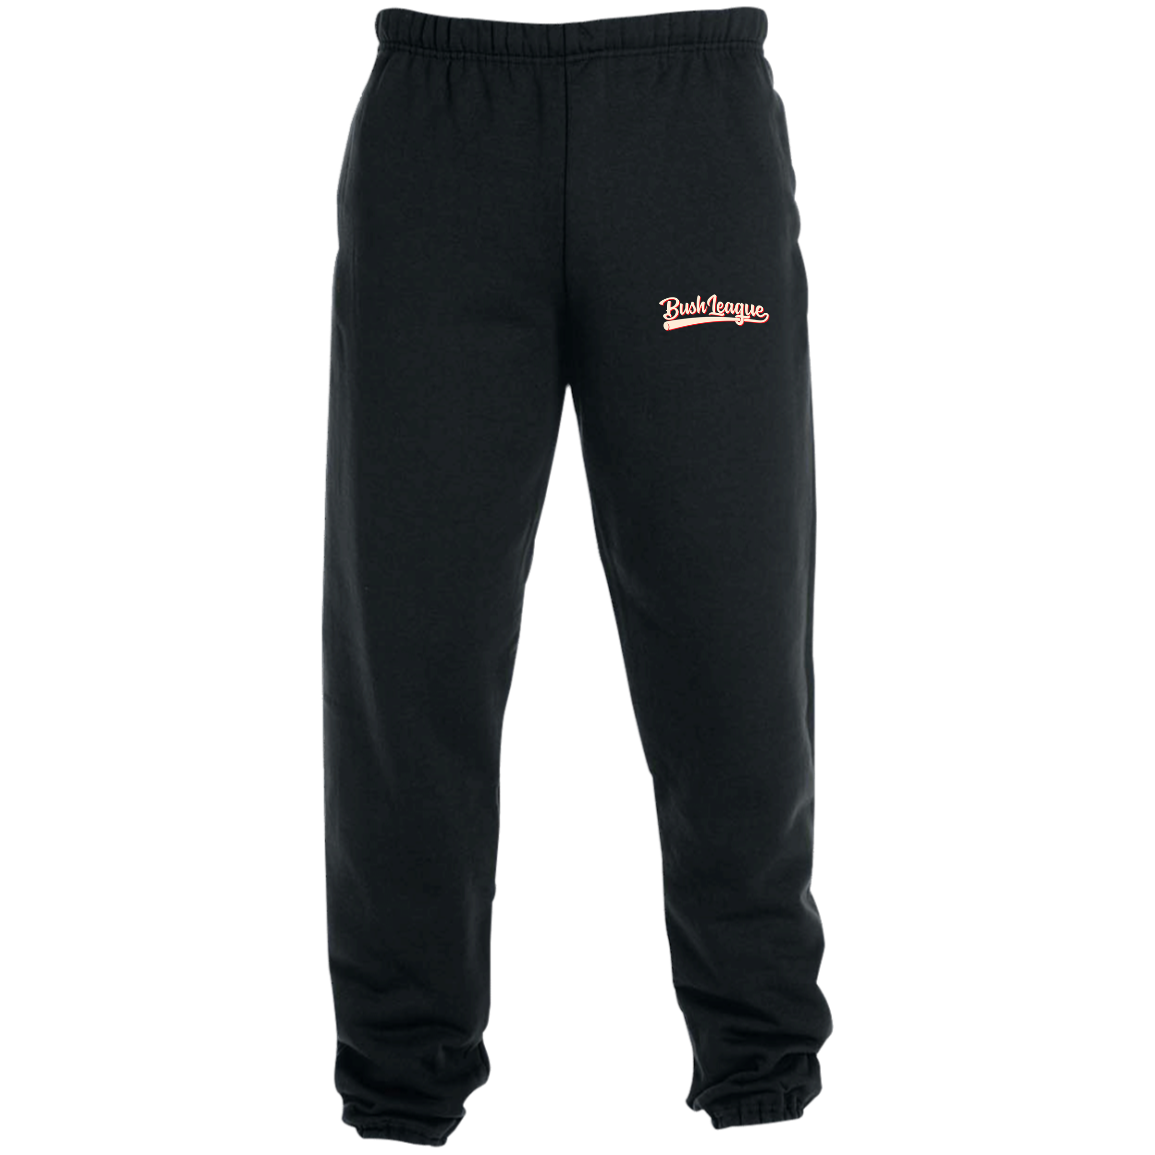 Bush League Sweatpants with Pockets